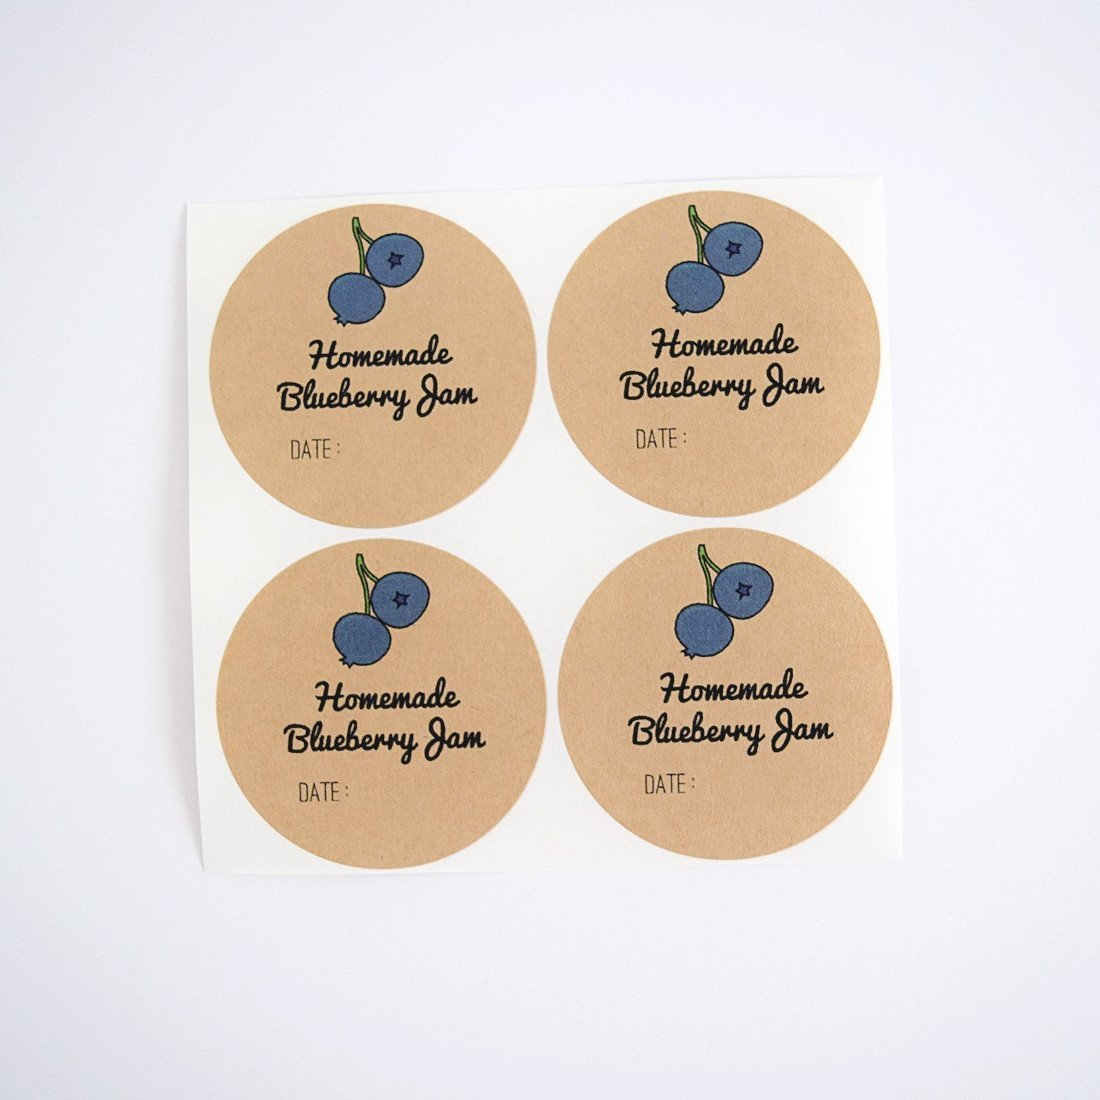 Homemade Blueberry Jam Labels for Mason Jars by Once Upon Supplies, Blueberry Jam Canning Labels, Canning Supplies, 2'' Size for Regular Mouth Jars, 40 Pcs